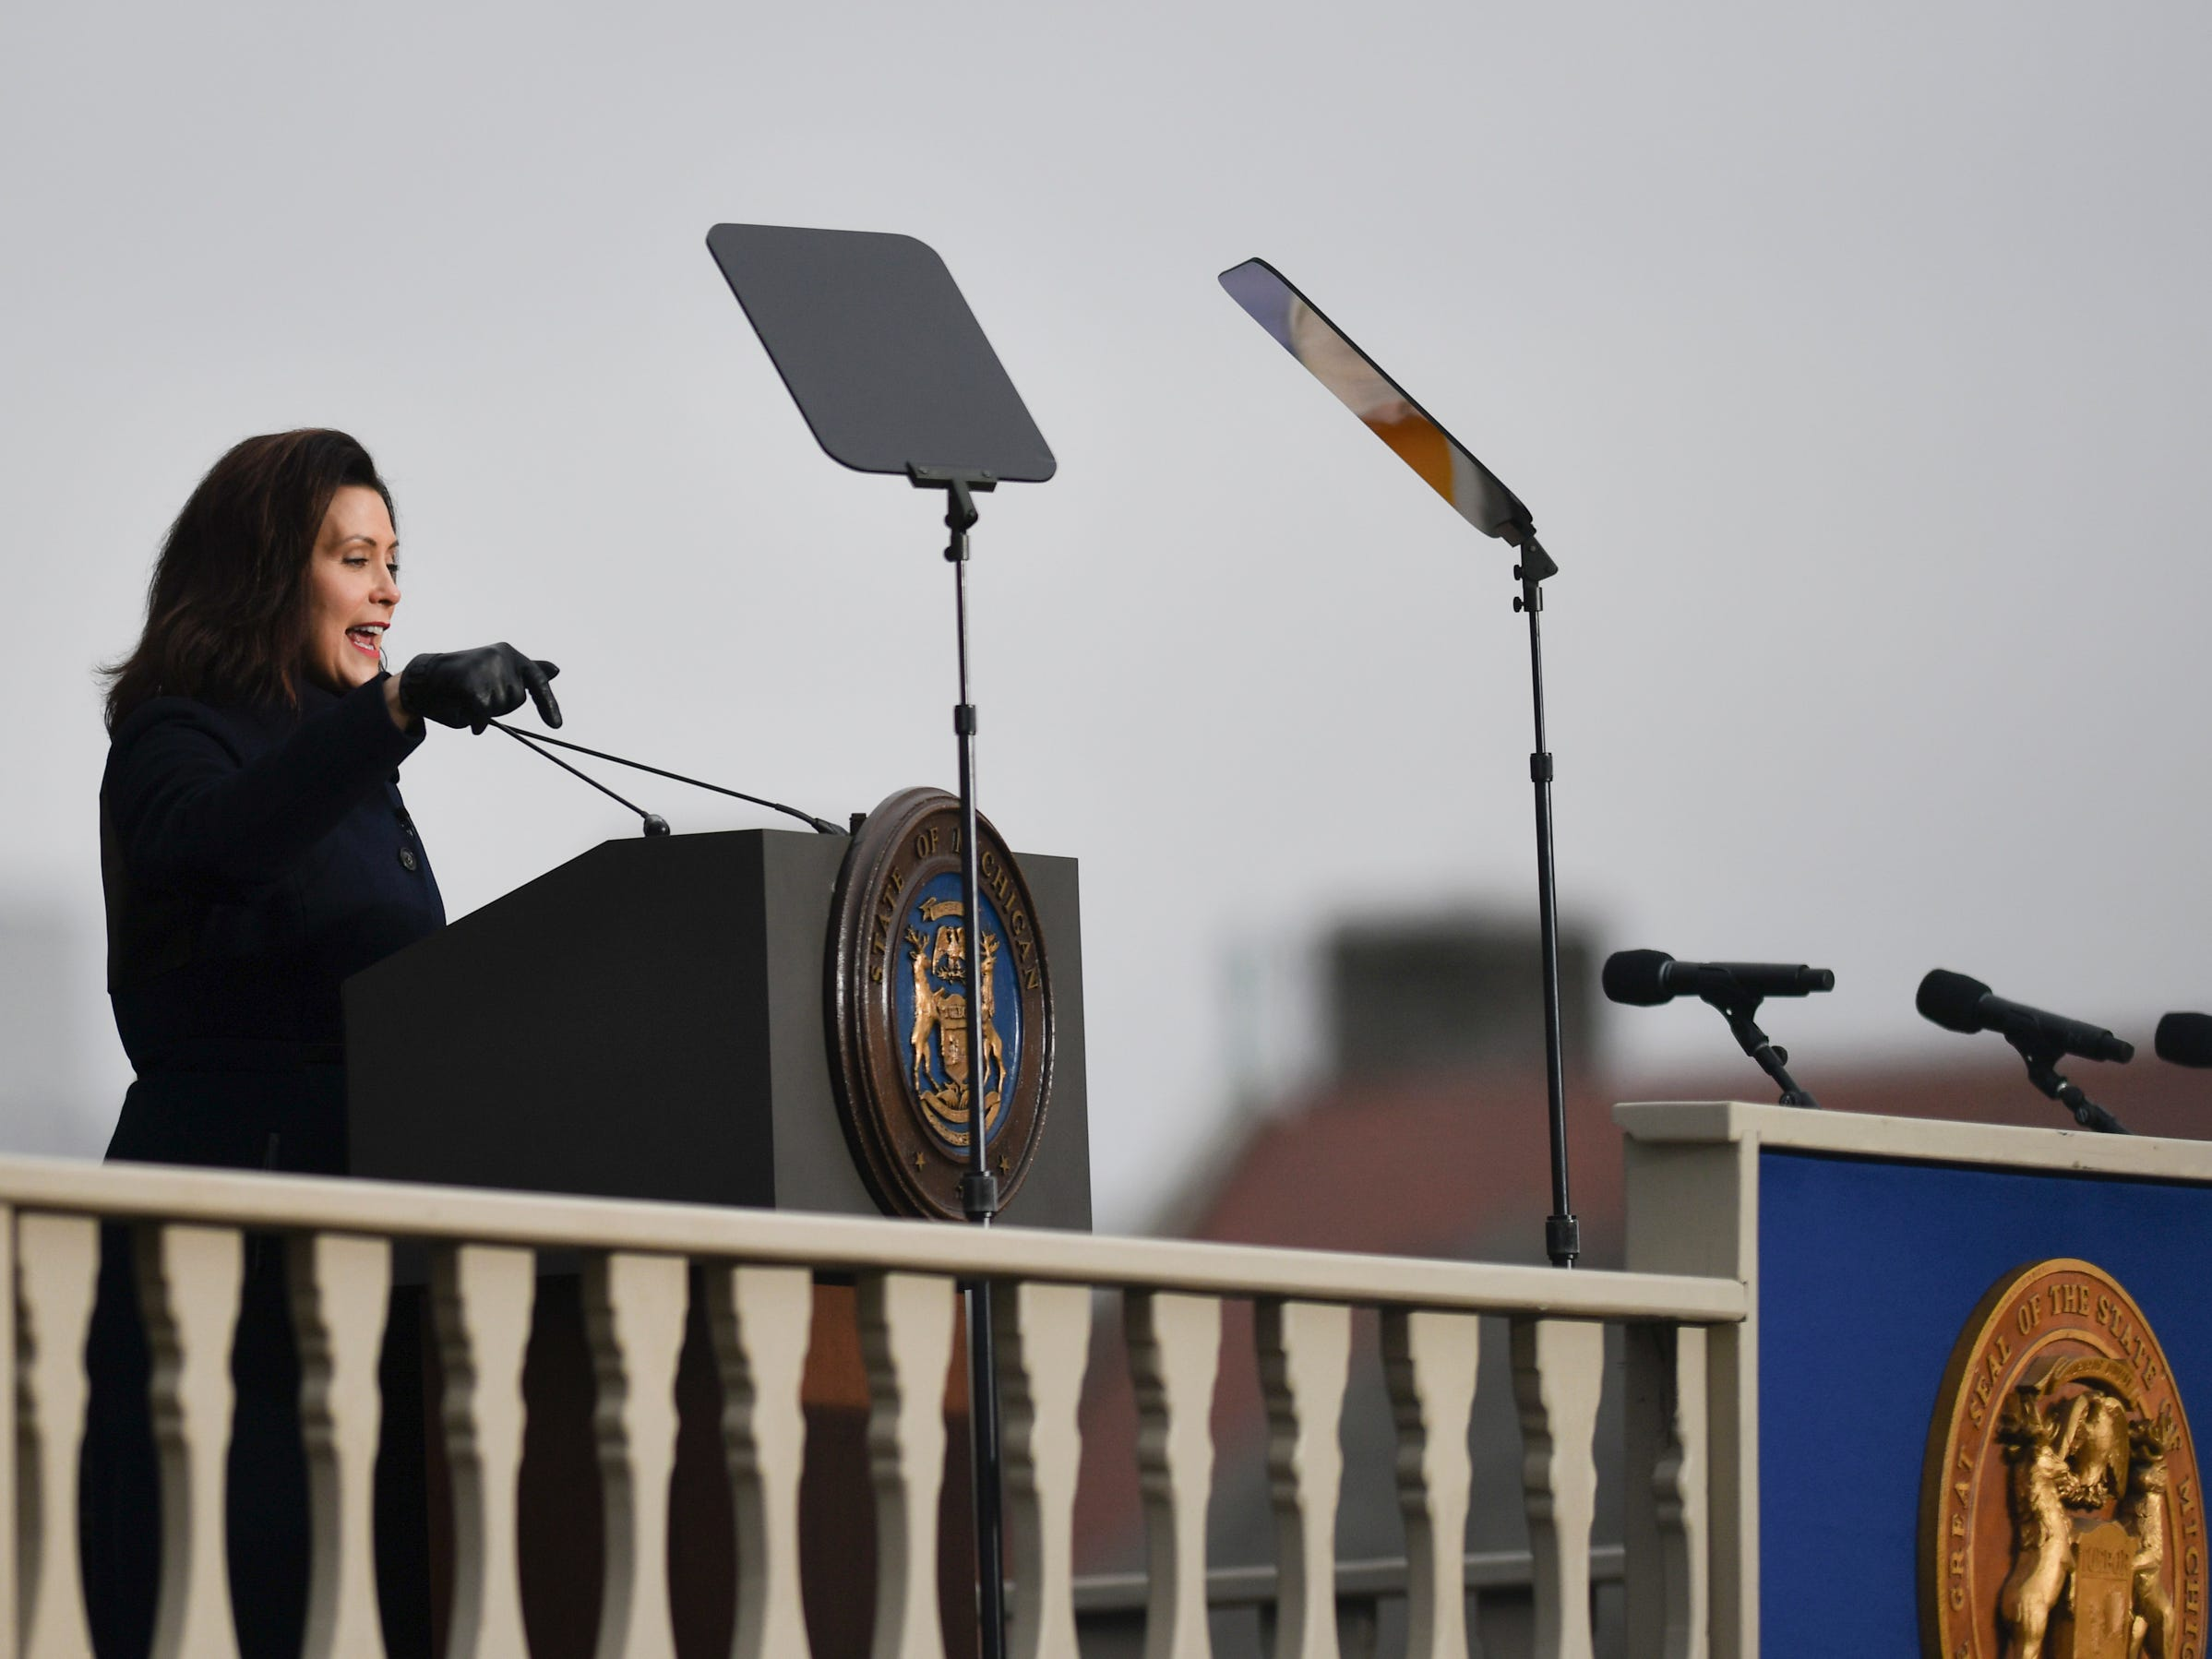 Michigan Governor Gretchen Whitmer speaks Tuesday, Jan. 1, 2019, after being sworn-in as Michigan's 49th governor on the steps of the State Capitol in Lansing, Michigan.  [AP Photo/Matthew Dae Smith/Lansing State Journal]